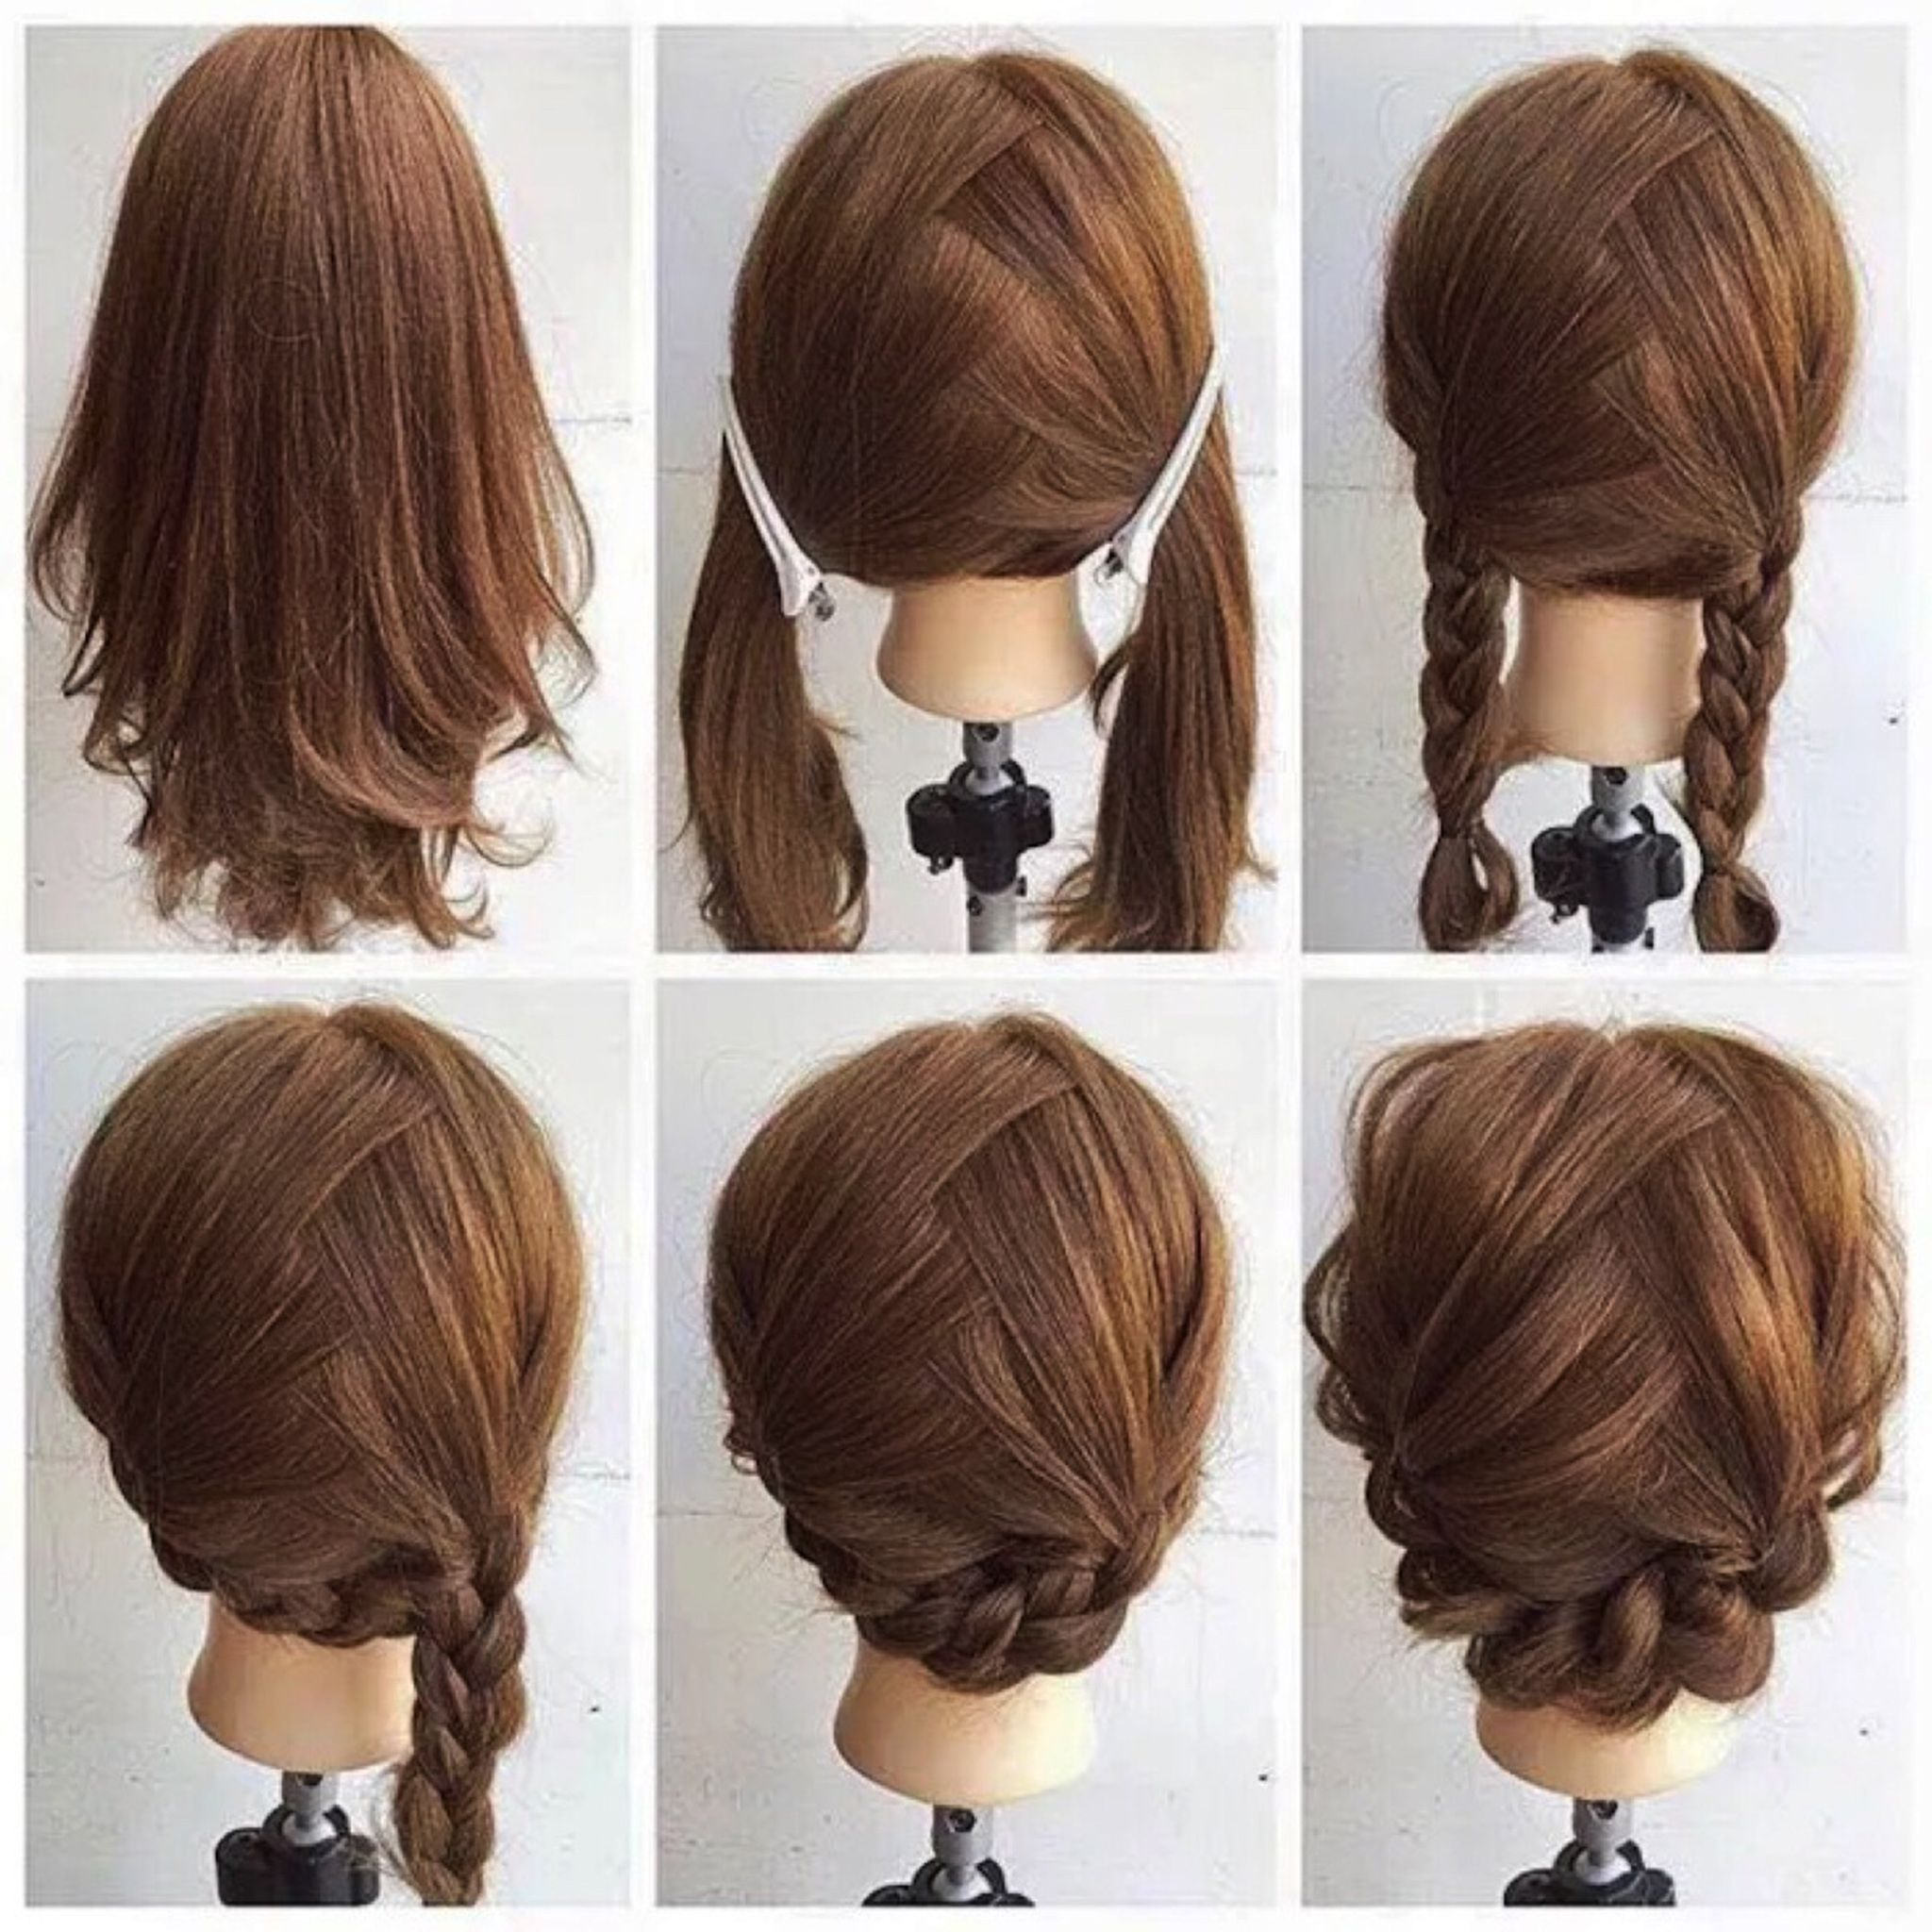 Pin By Kim Kennedy On Hairstyles Hair Styles Medium Hair Styles Diy Hairstyles